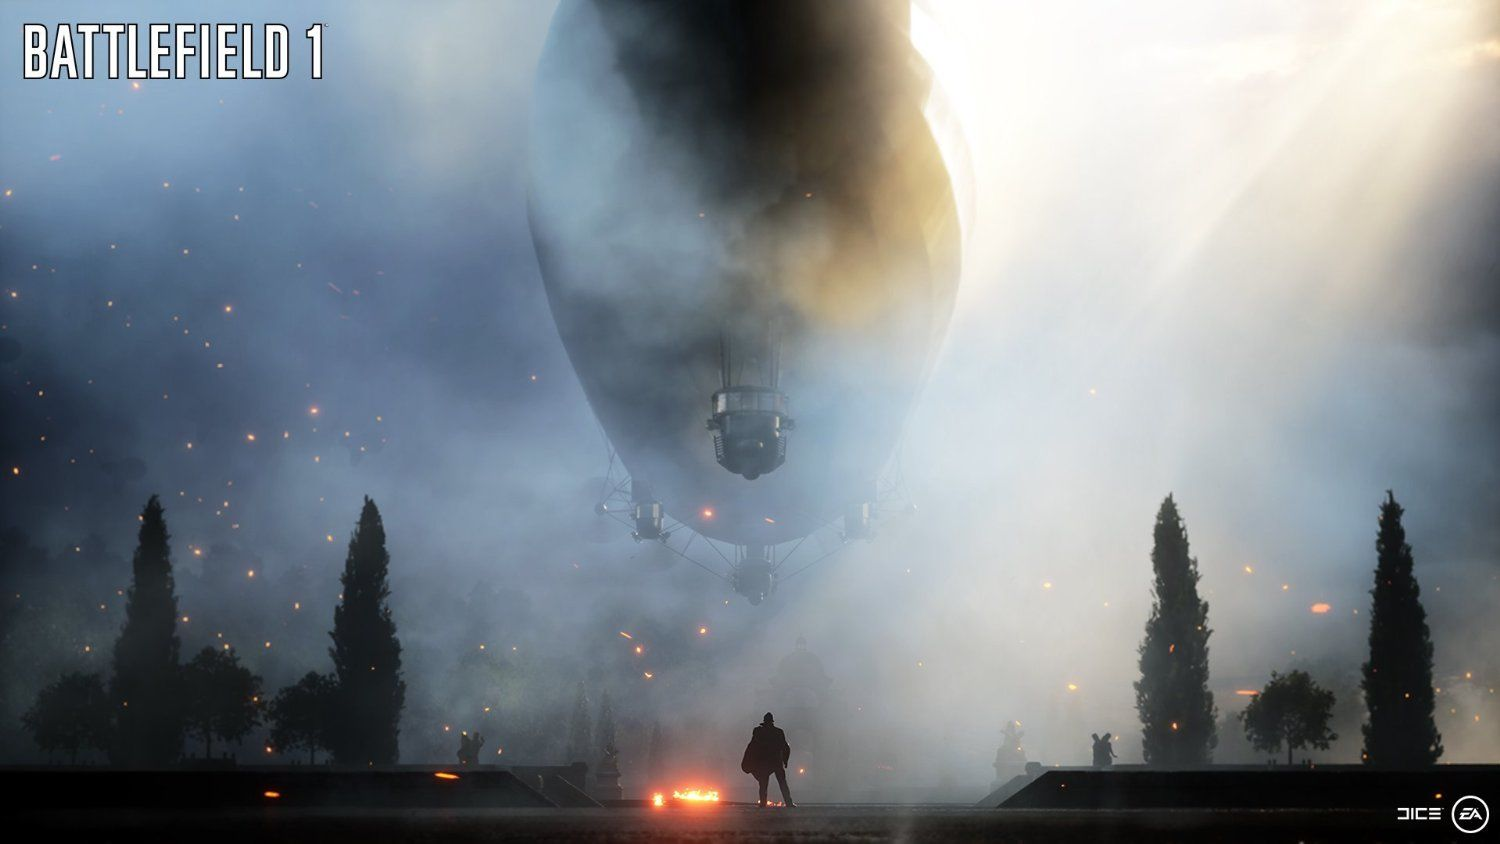 Battlefield 1 Devs Explain Why They Went Back To World War 1 battlefield 1 screenshot 2